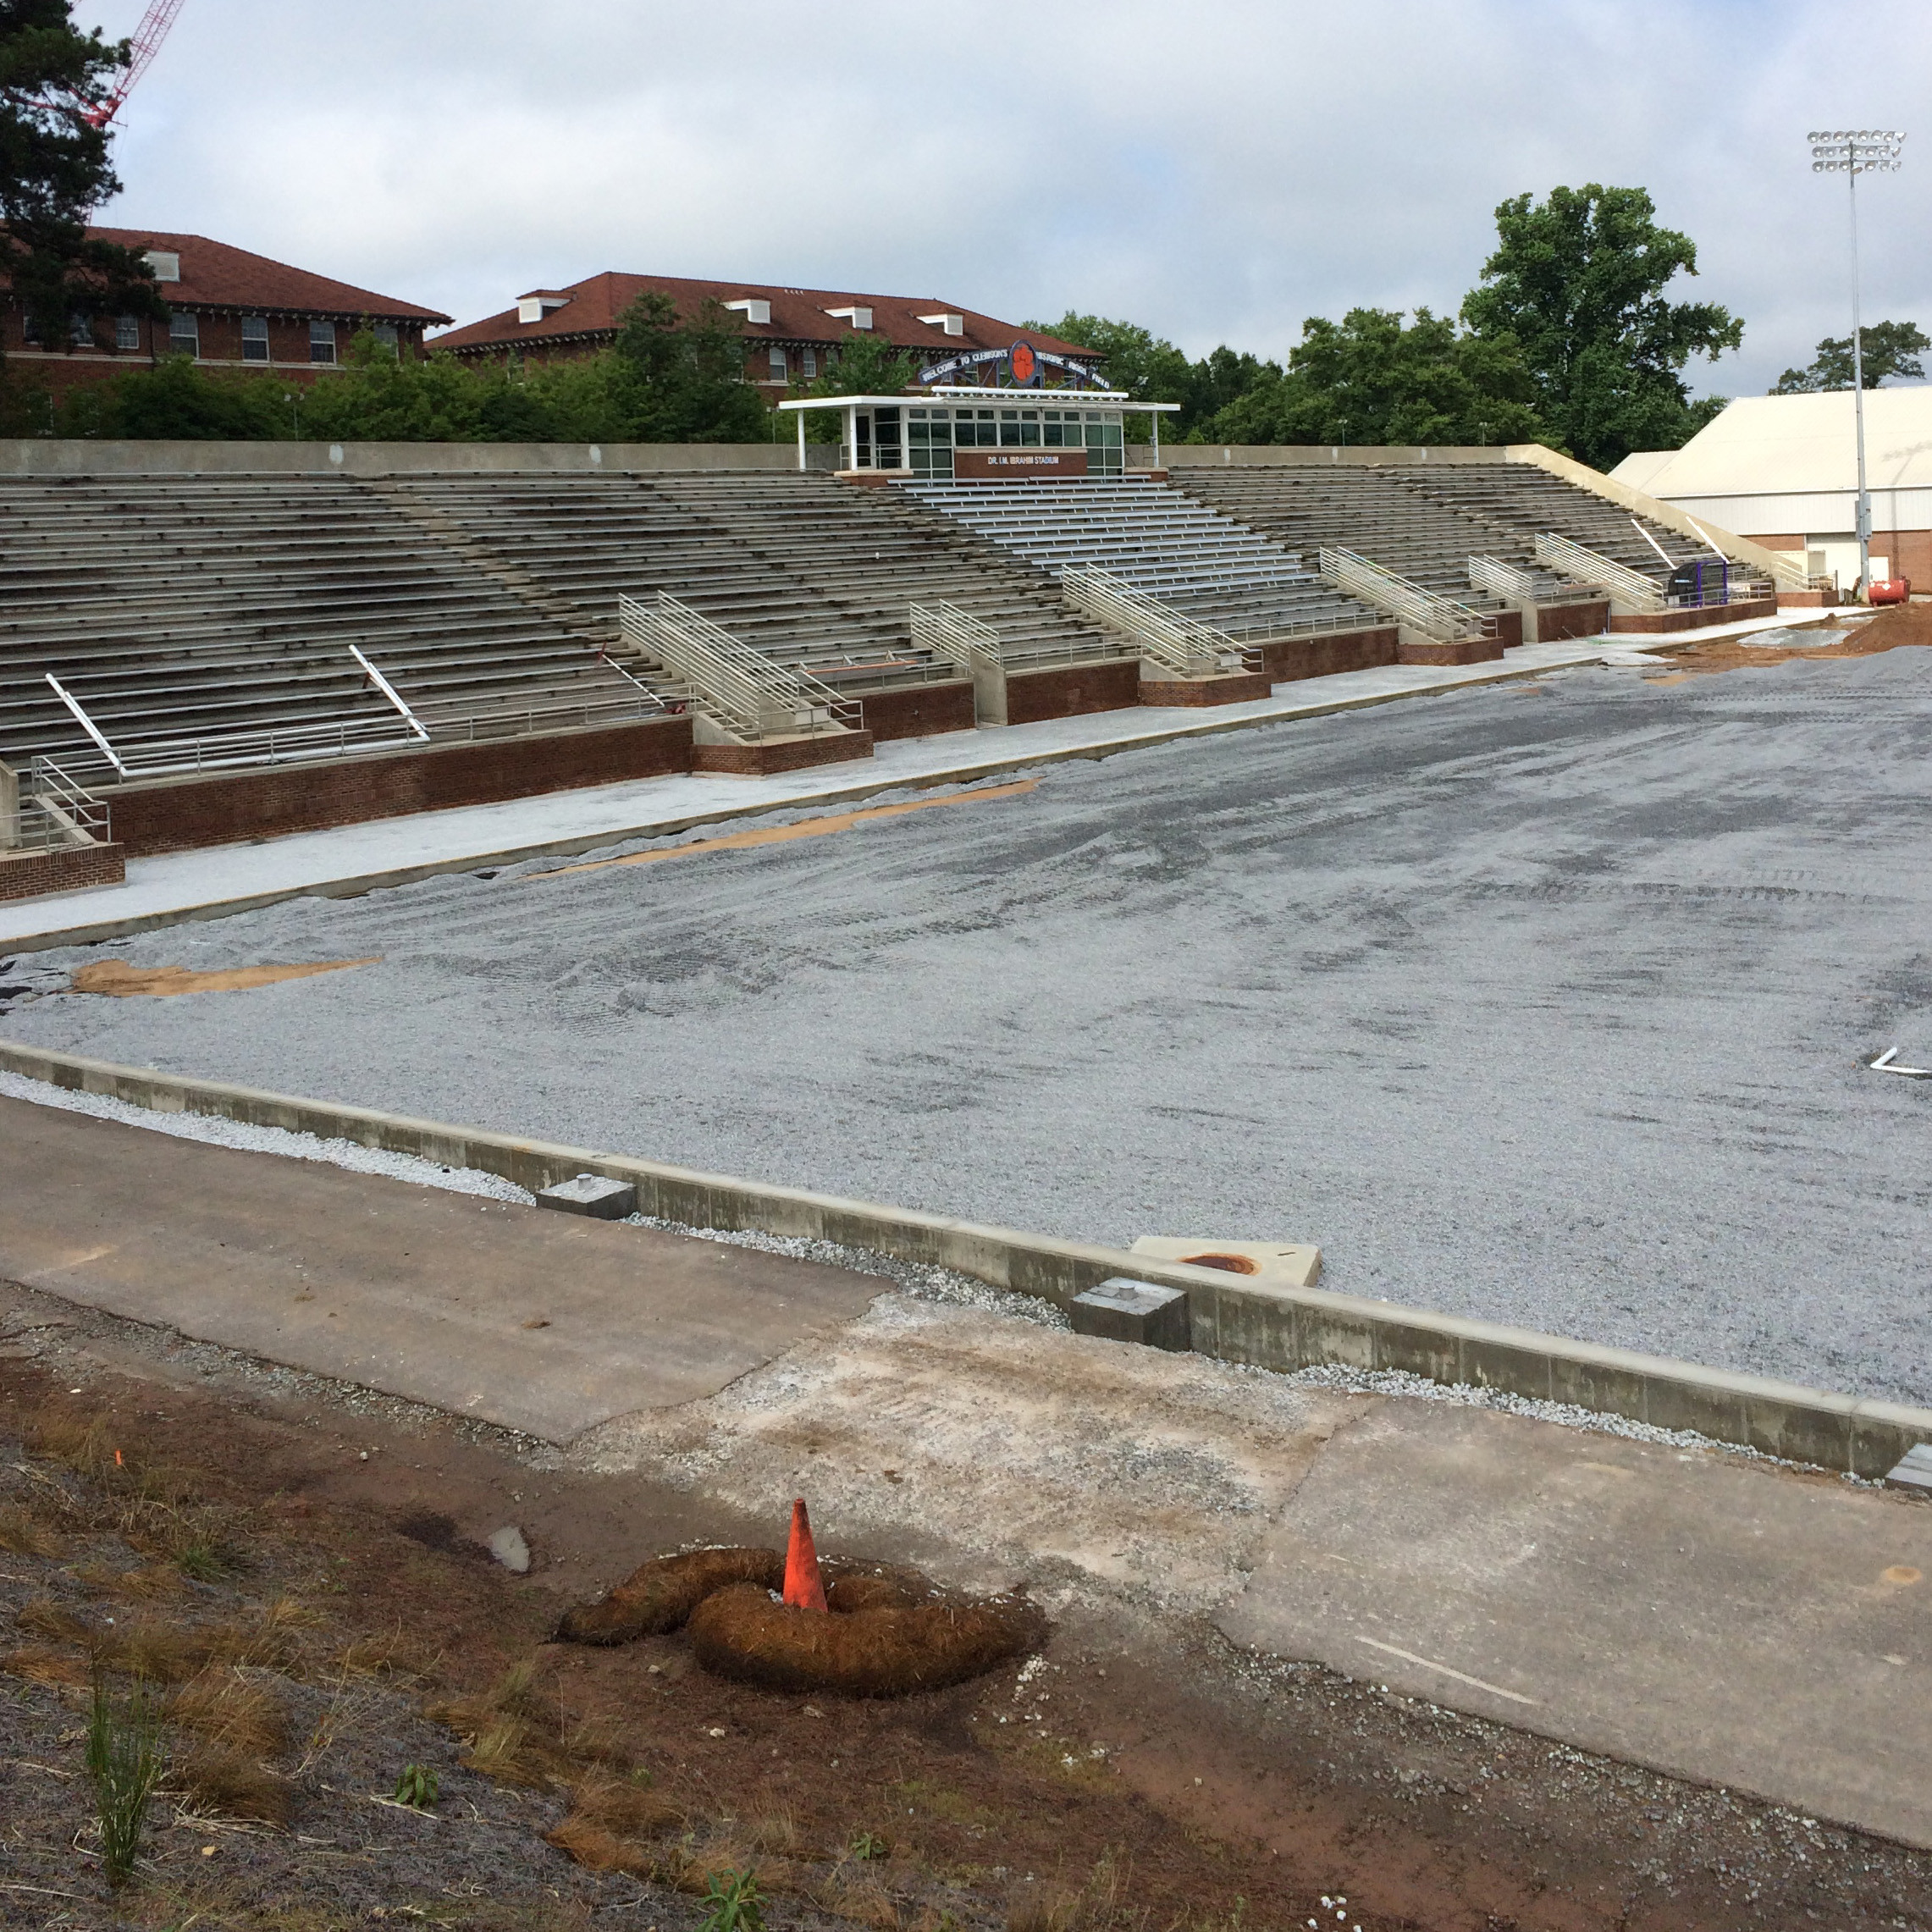 Construction Continues at Historic Riggs Field